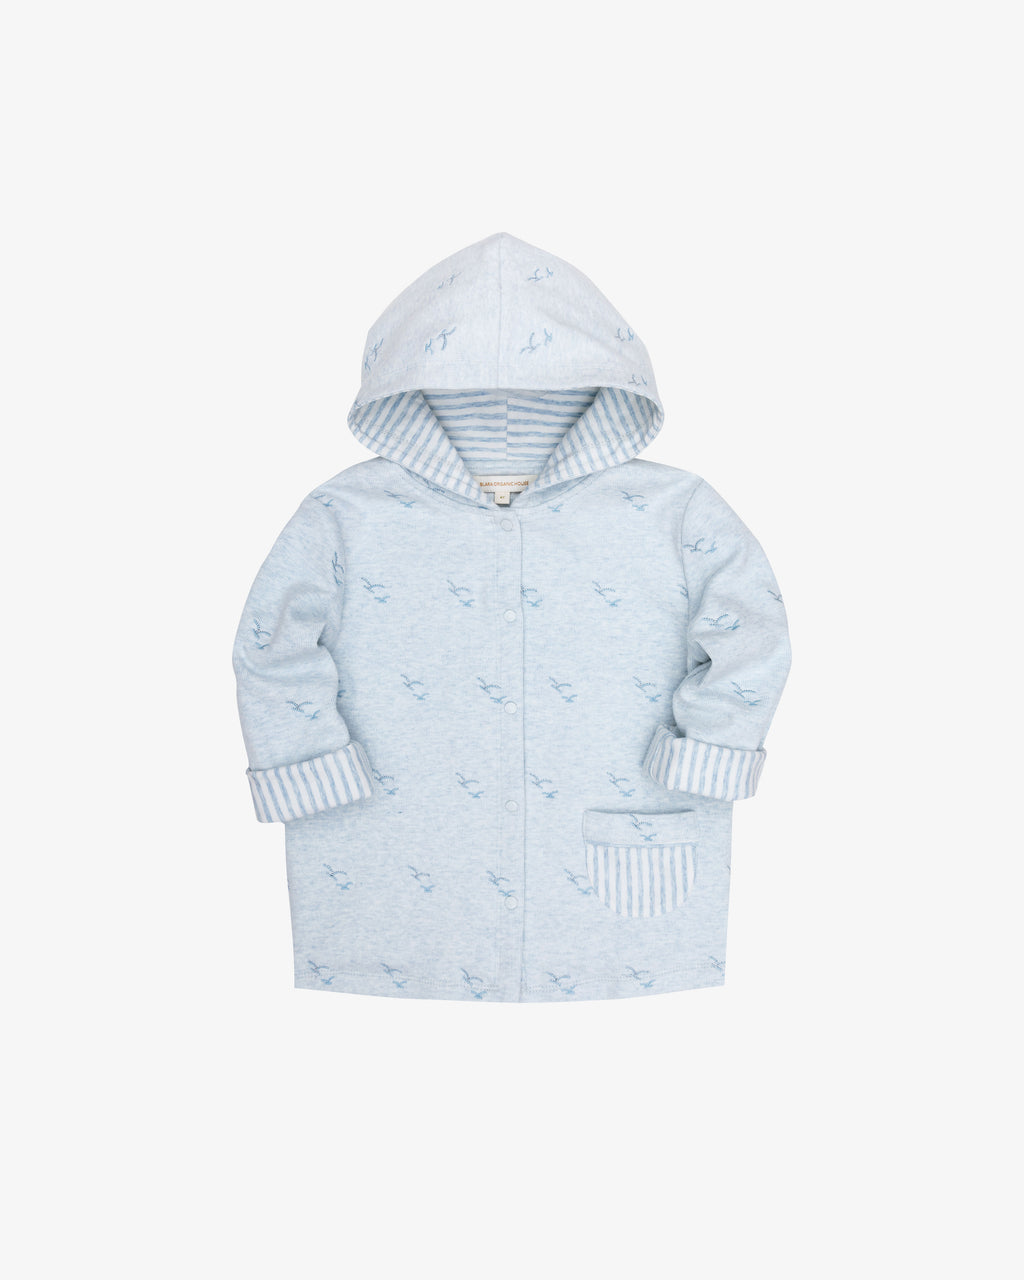 SEAGULL OUTDOOR JACKET BOY